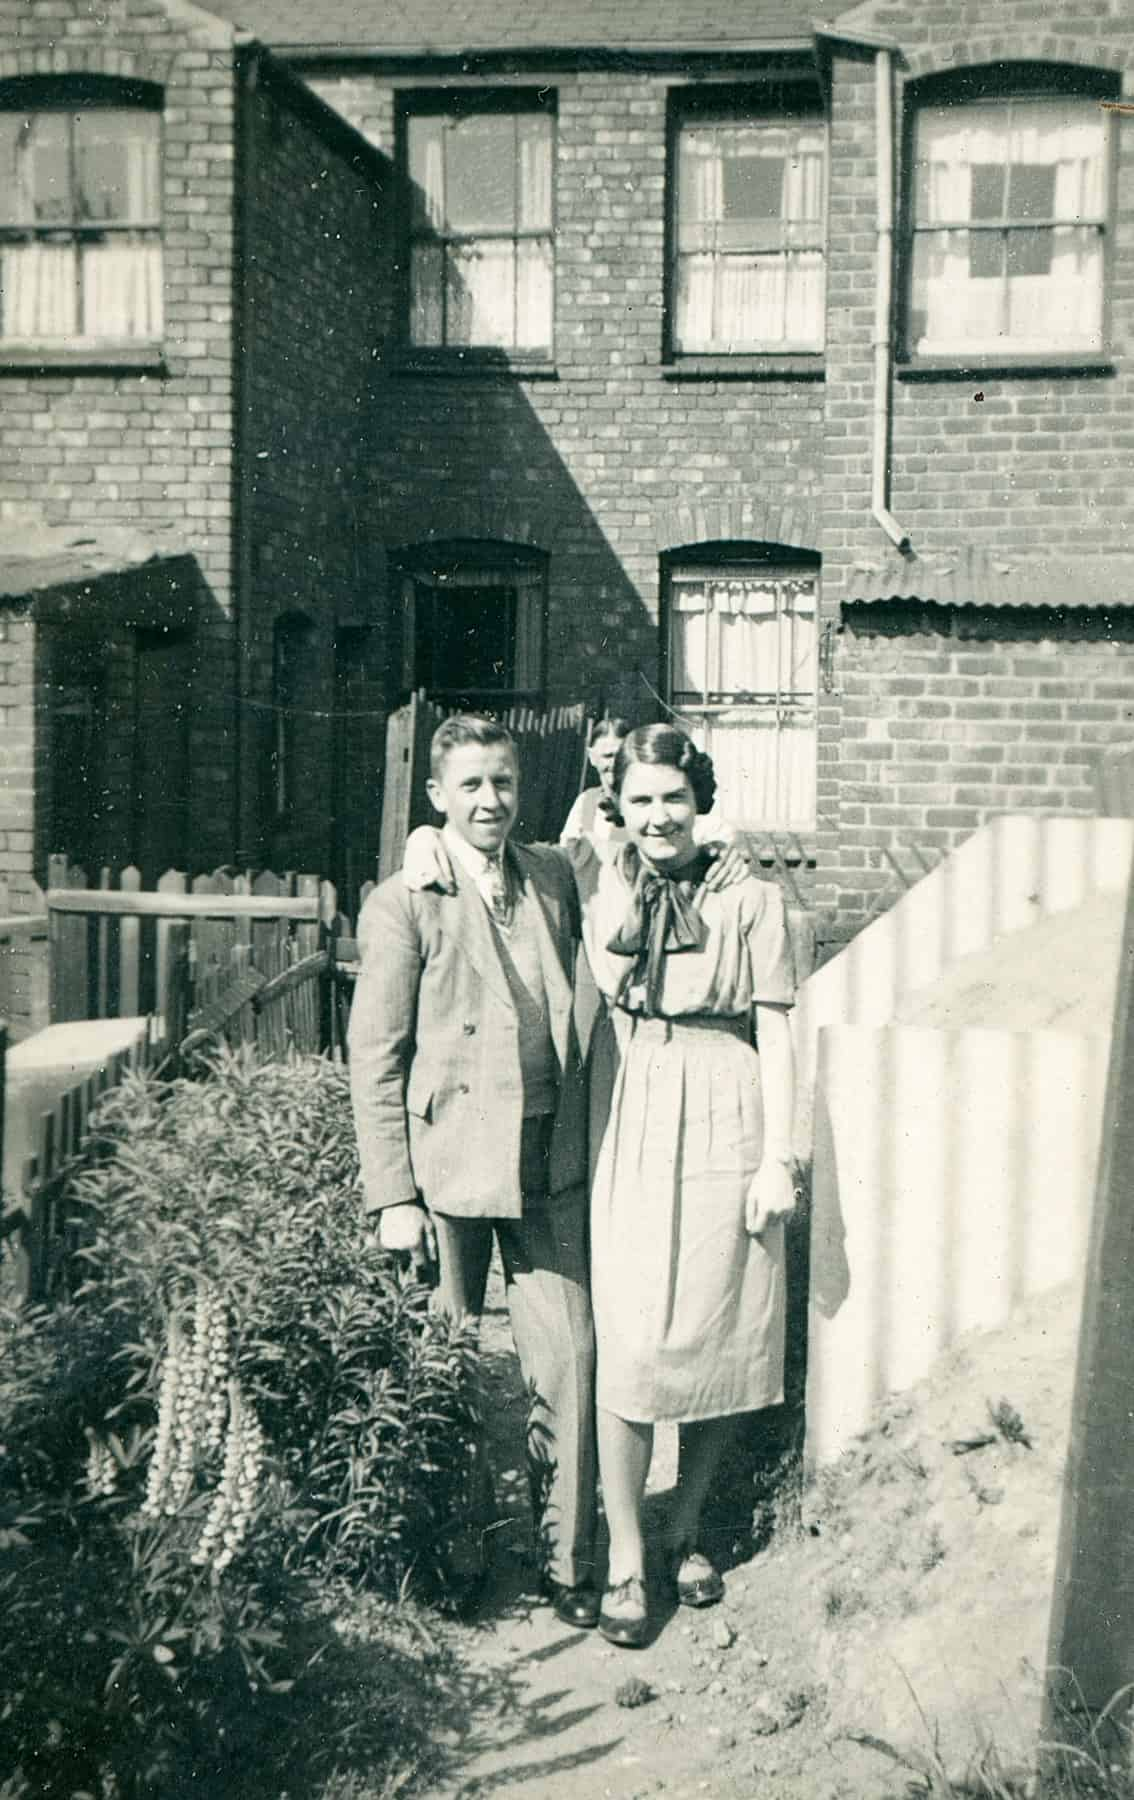 That's my mum and that's her brother Frank. This is taken in the back garden of that road that my grandparents lived in and that's the Anderson shelter. You can see they used to have lupins in the garden and rhubarb.